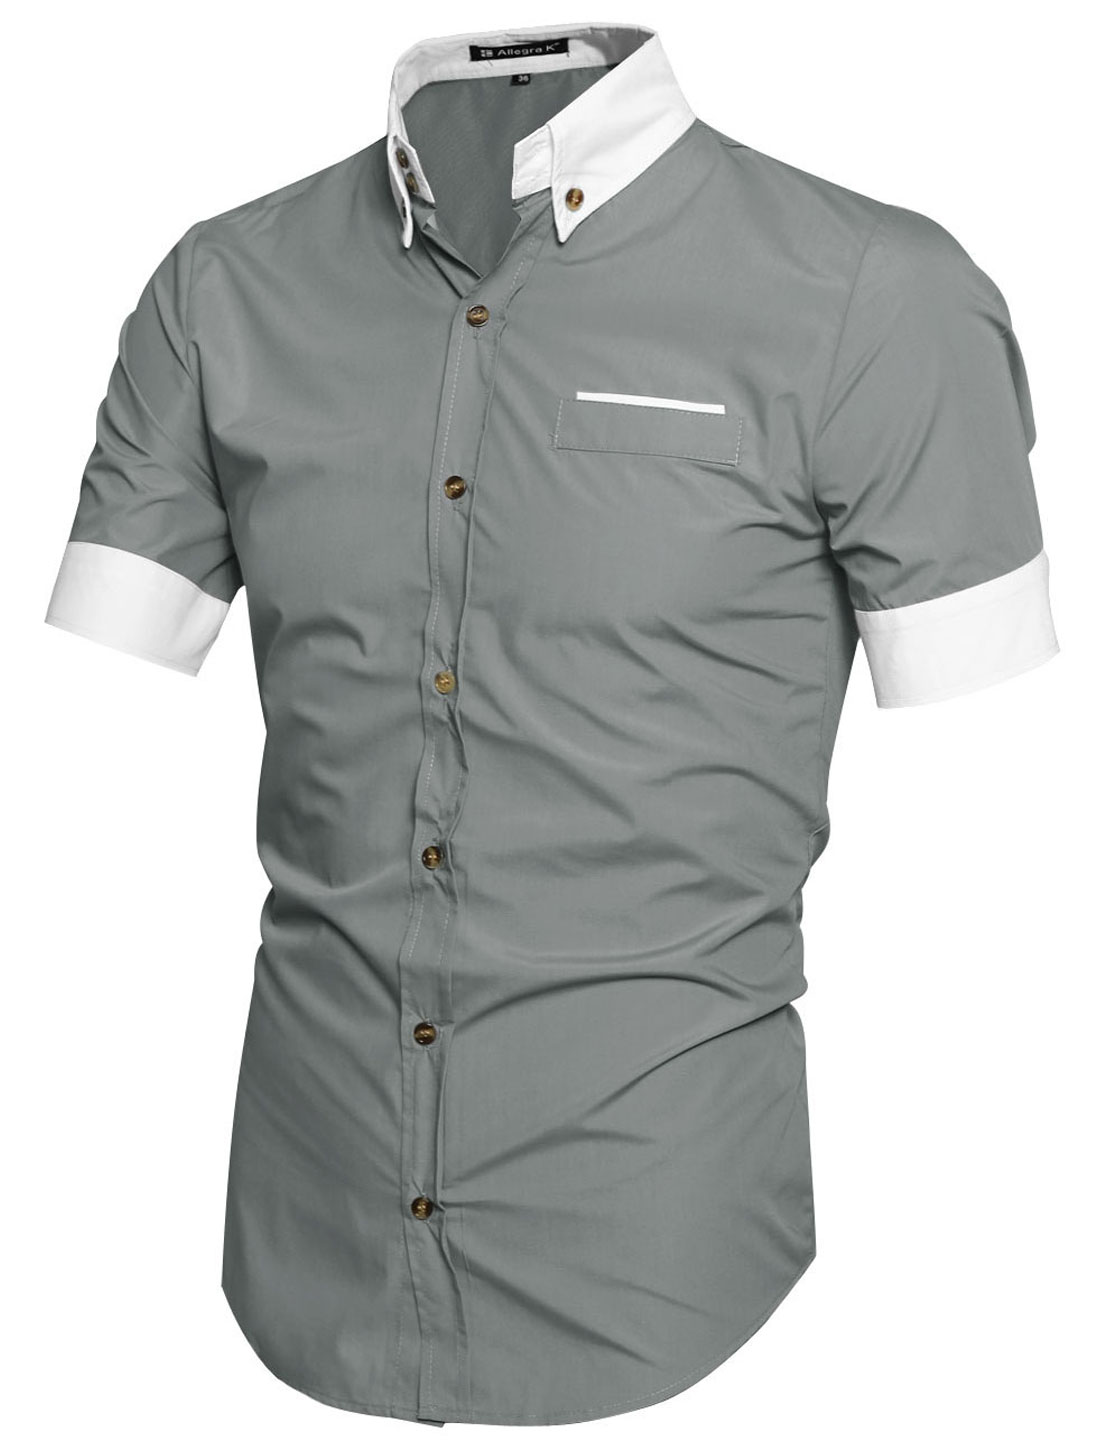 Men Contrast Color Short Sleeves Button Down Shirt Light Gray L